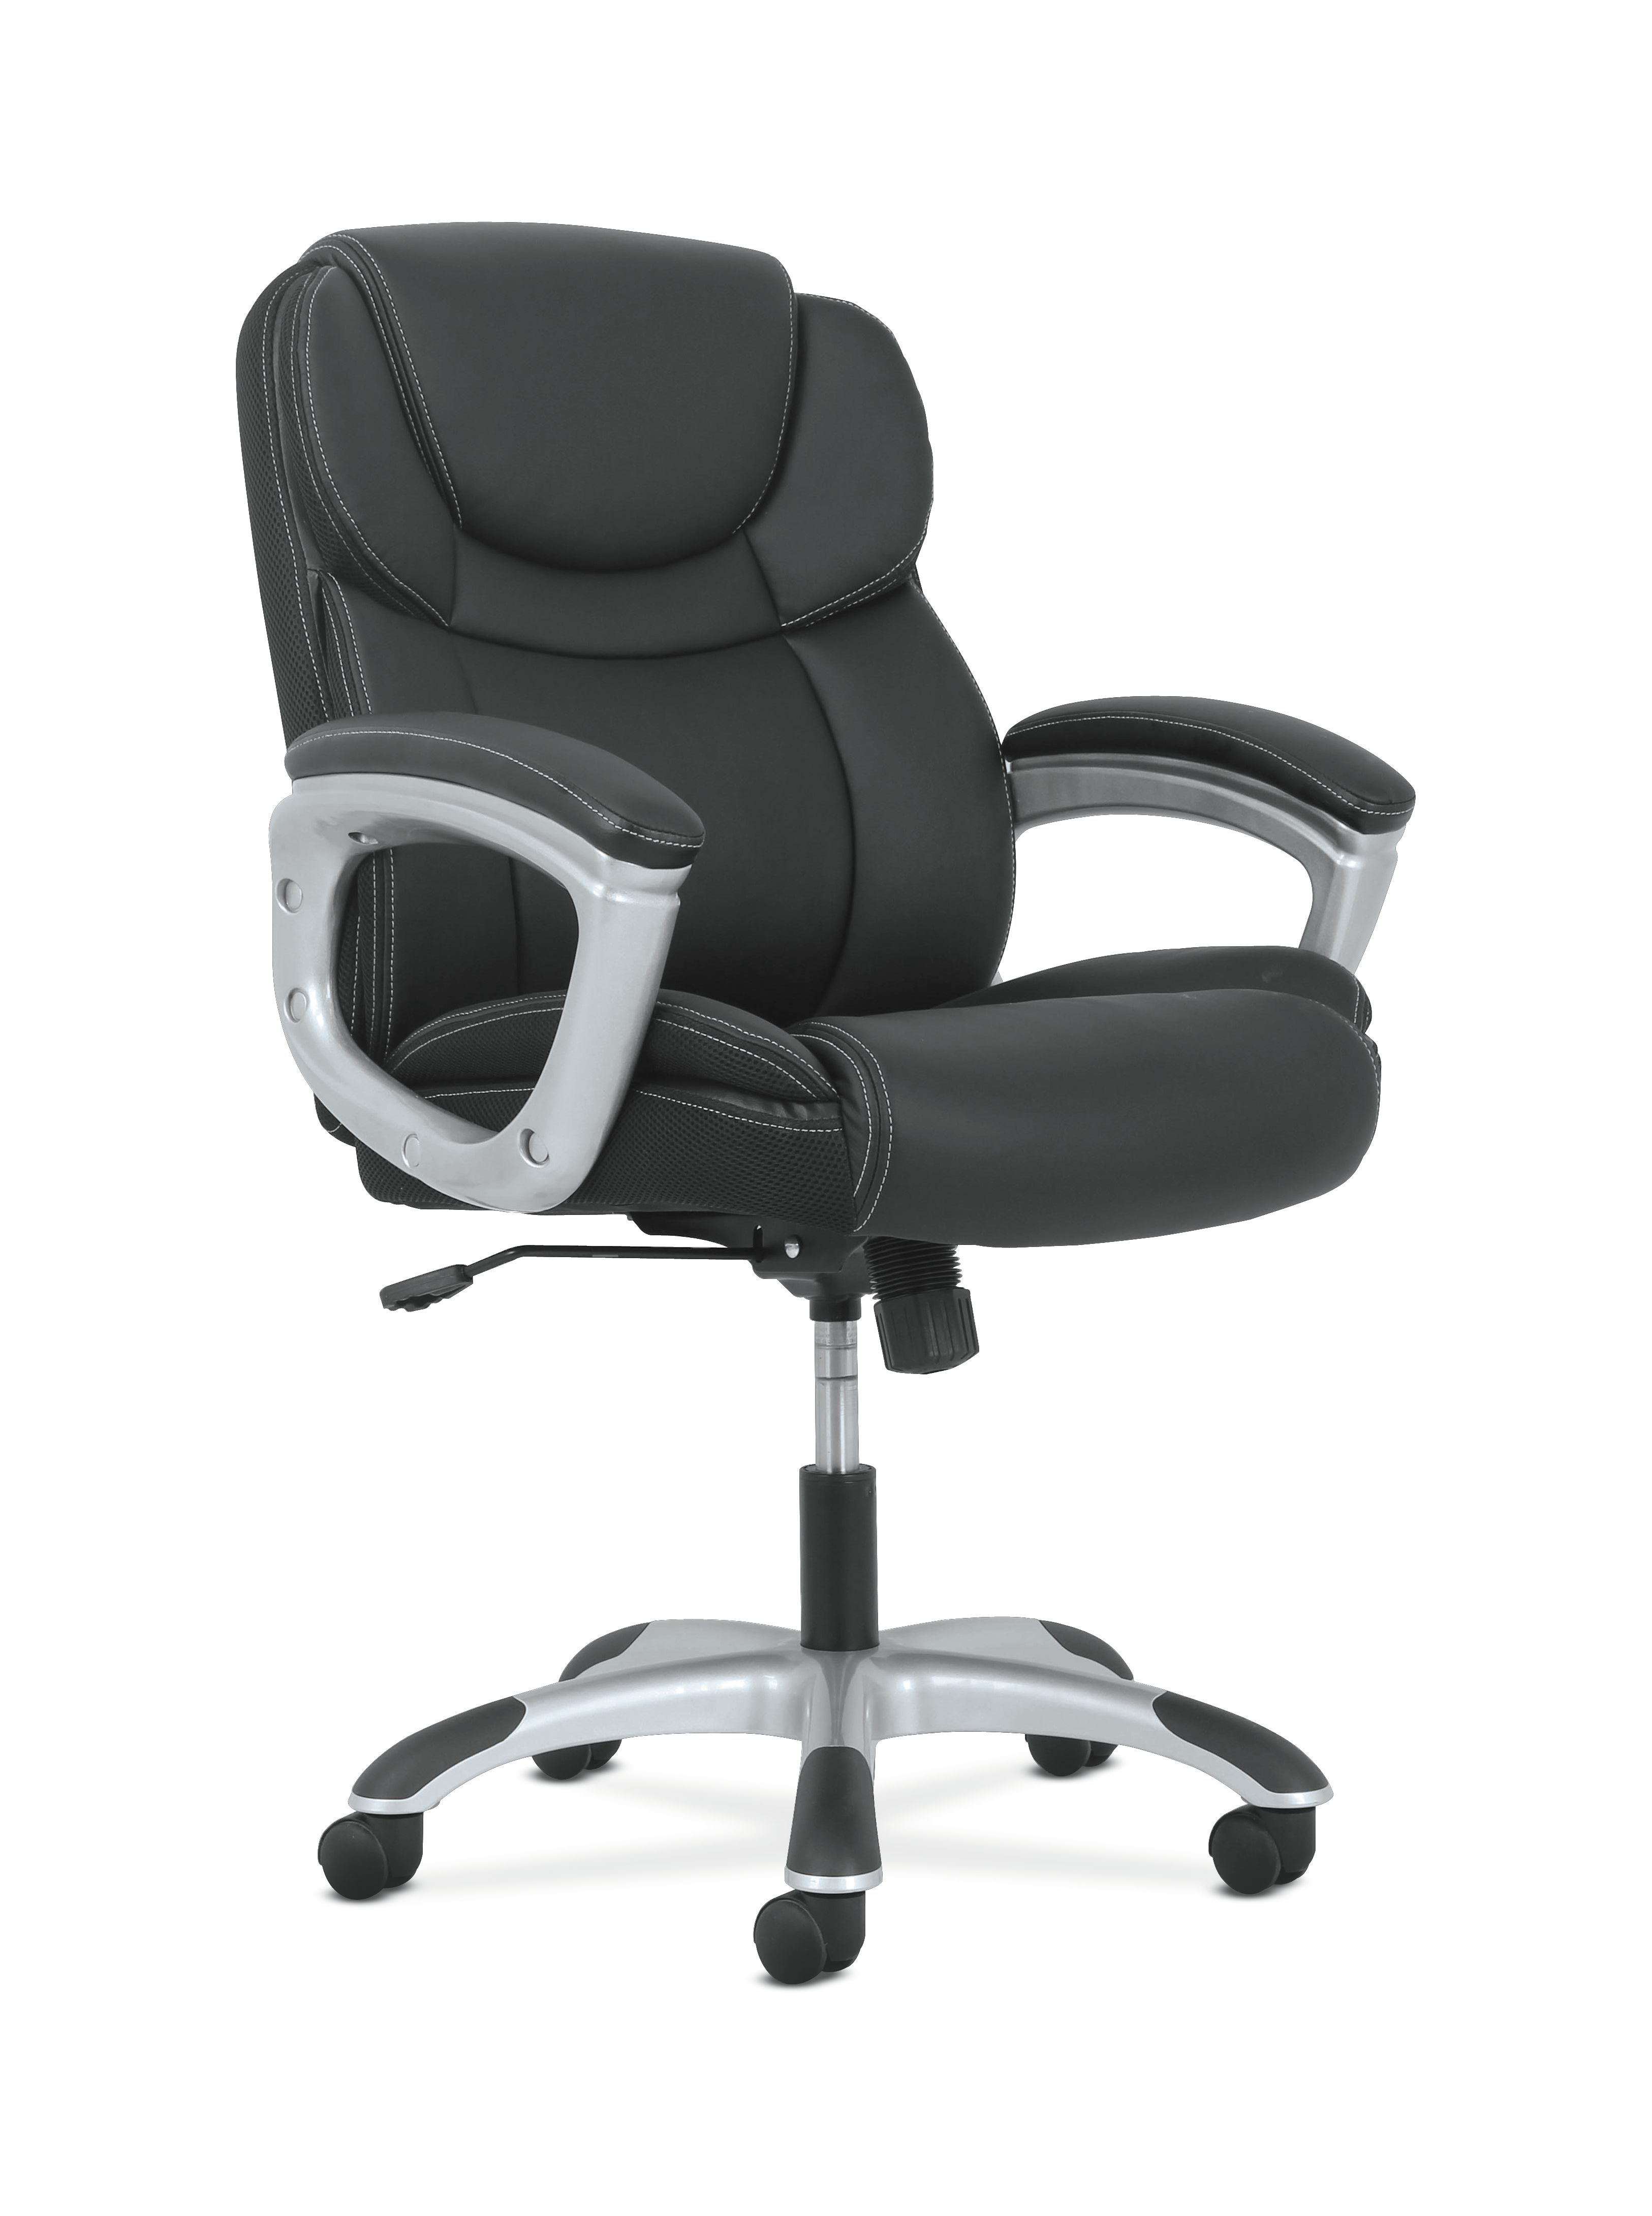 Sadie Leather Executive Computer Office Chair With Arms Ergonomic Swivel Chair Hvst306